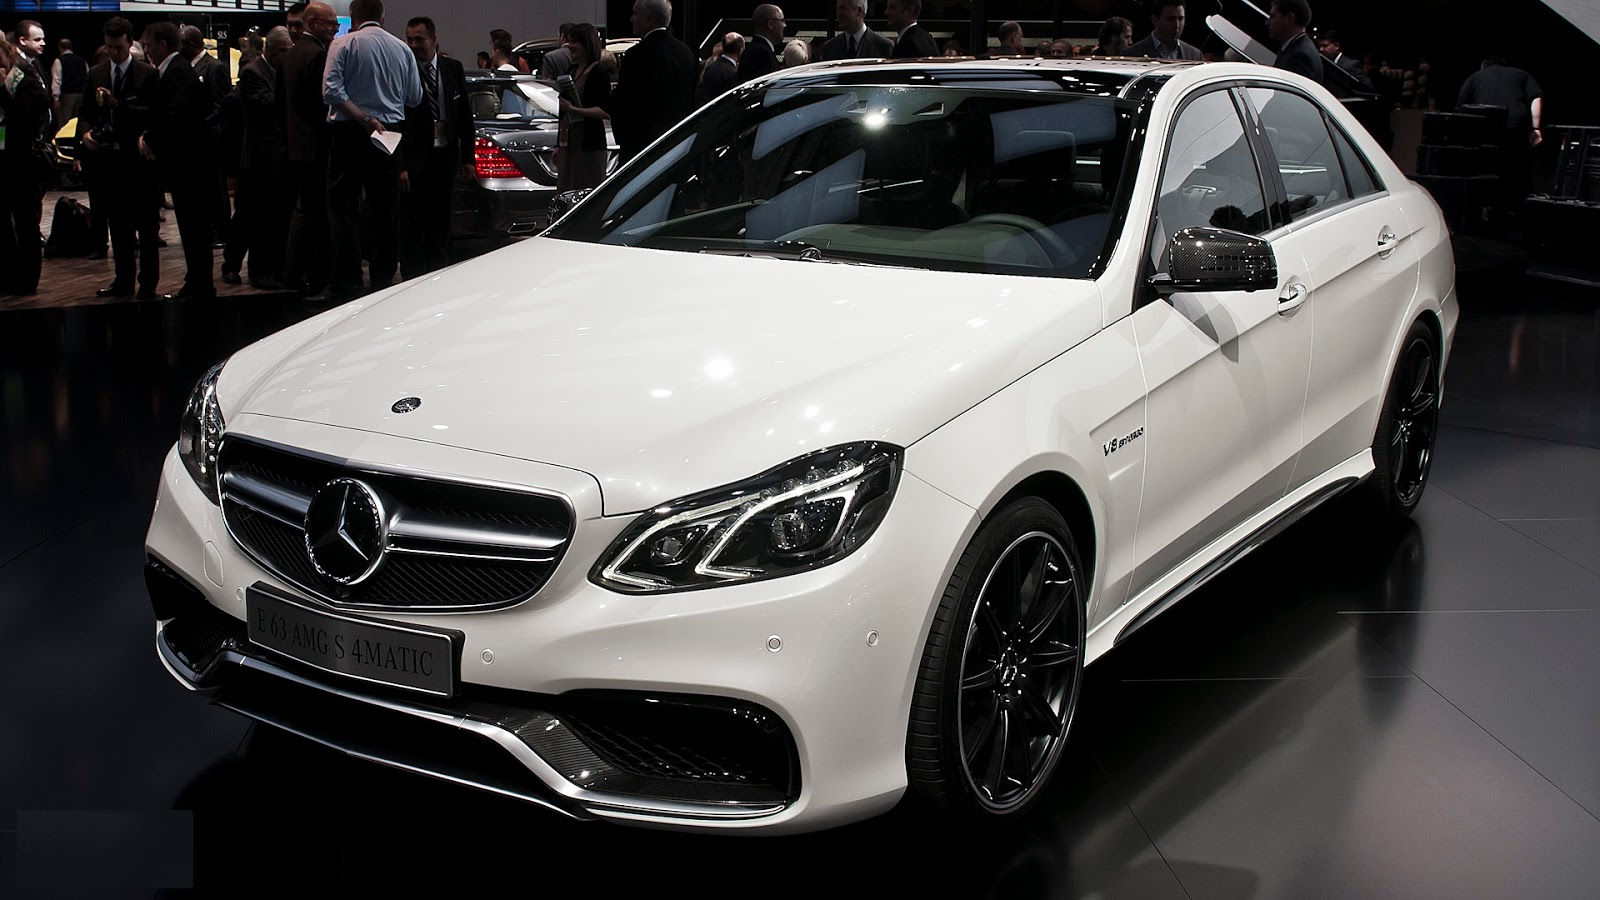 2016 e63 amg 4matic s top gear for Mercedes benz e63 amg s 4matic